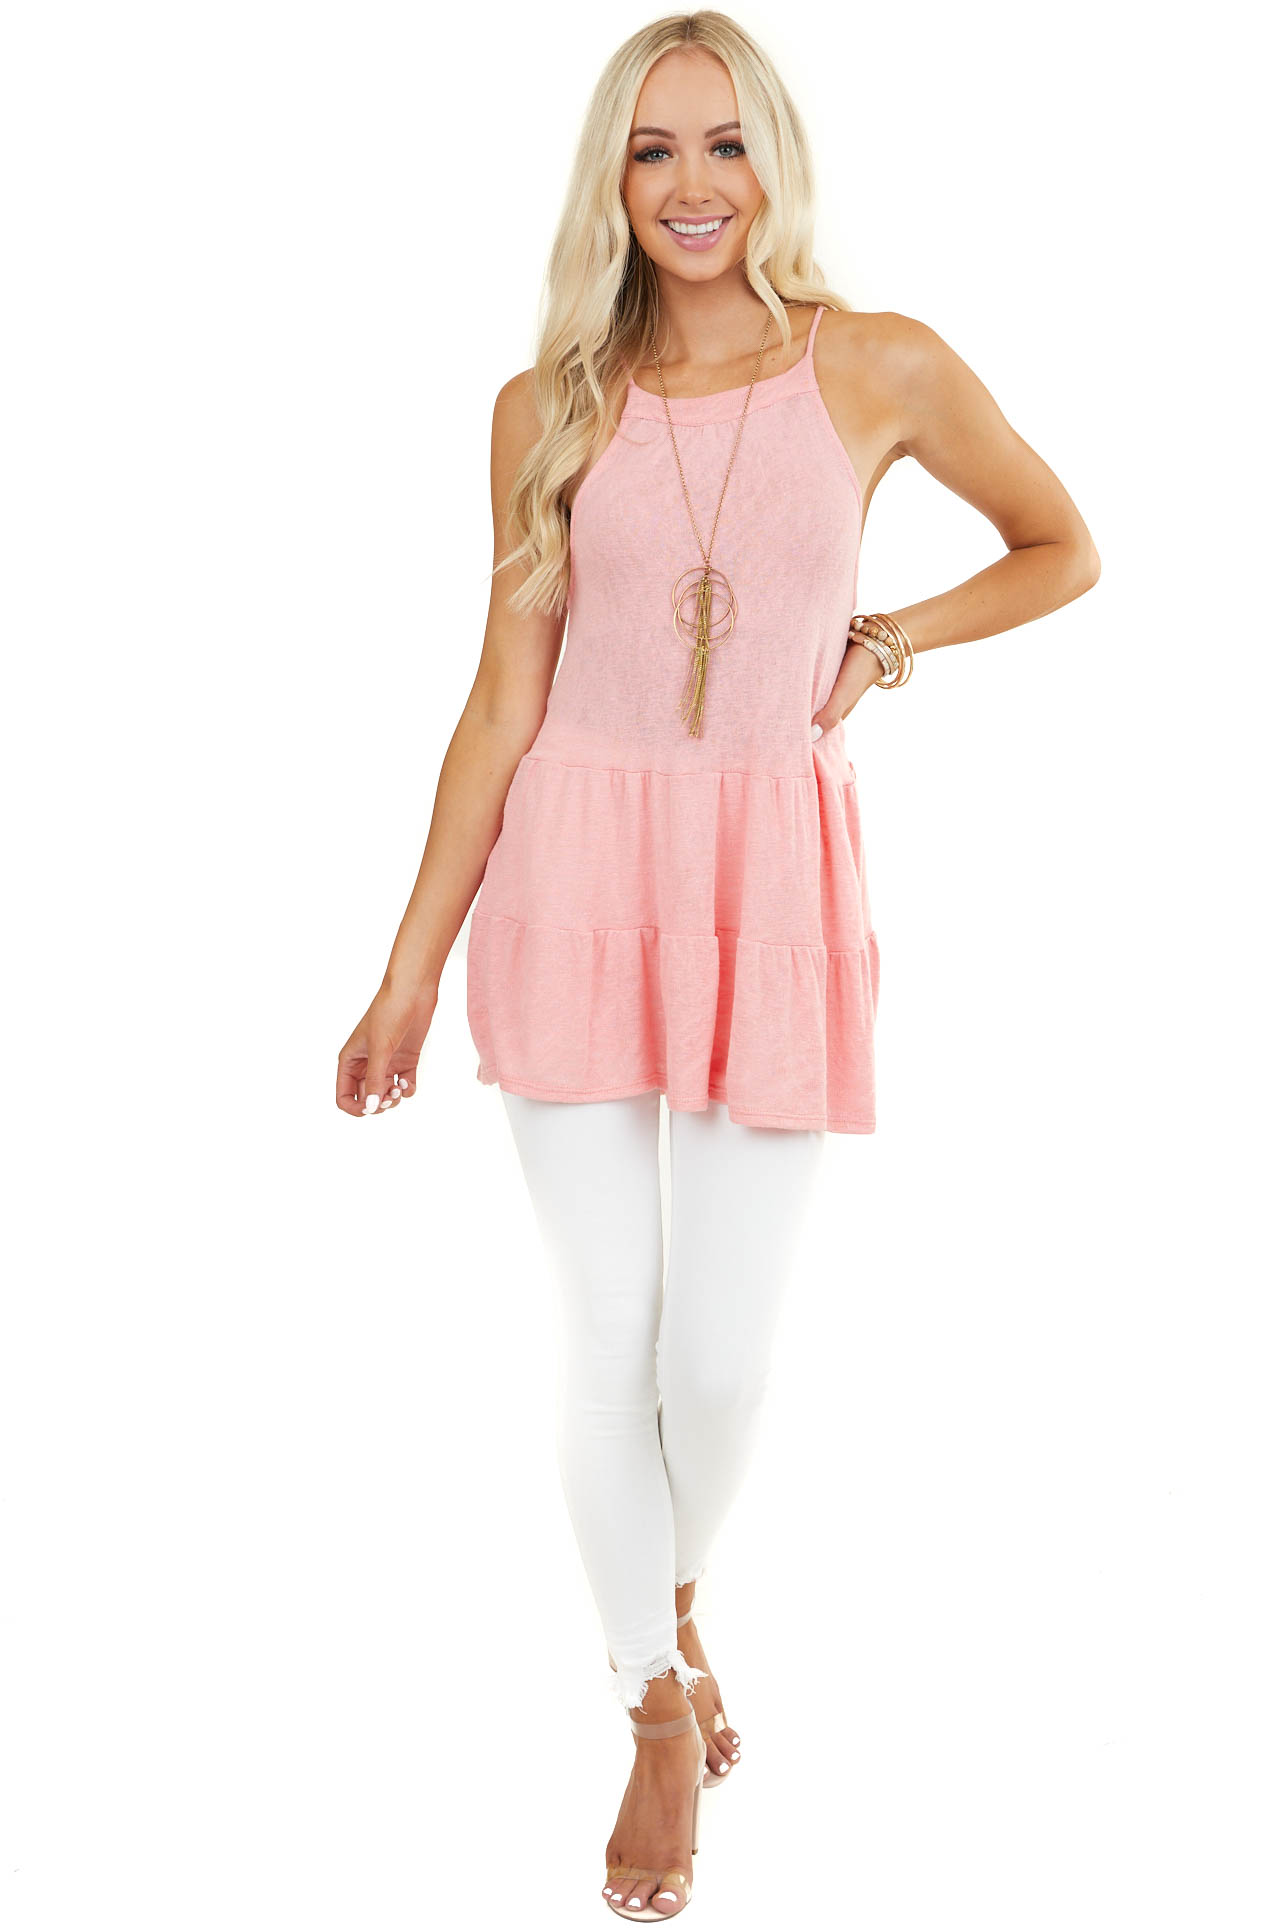 Coral Tiered Knit Tank Top with Rounded Neckline